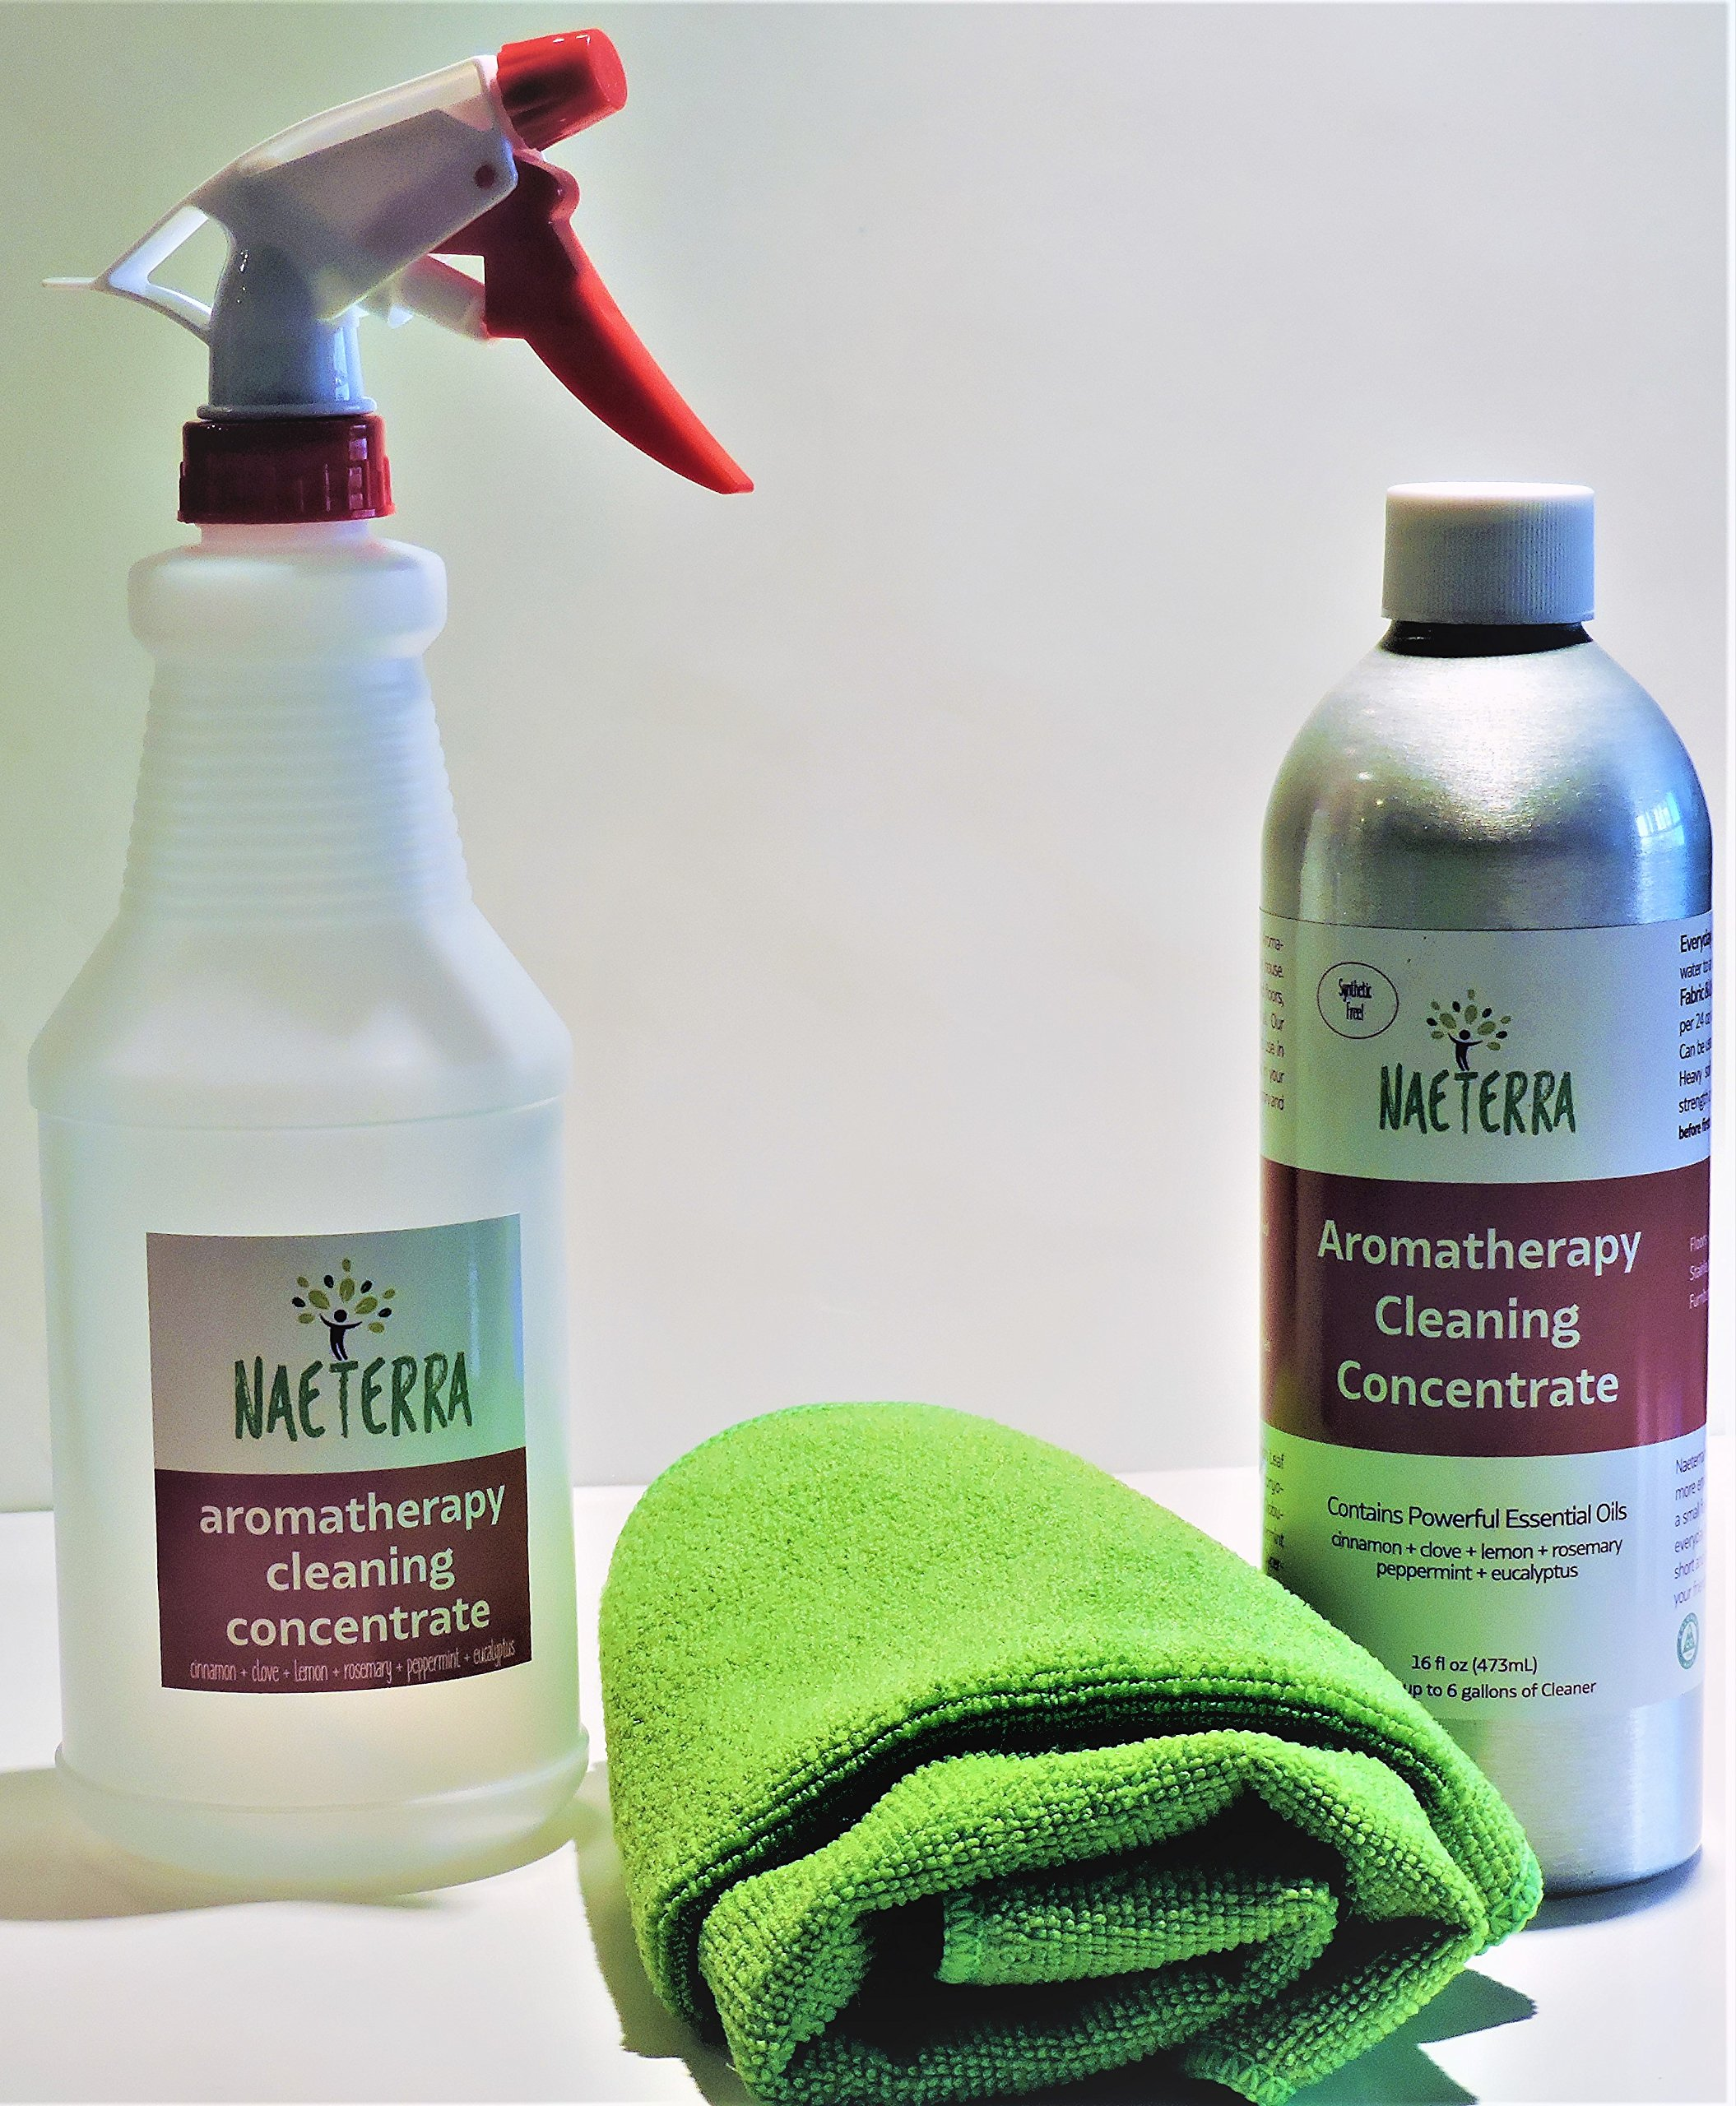 Naeterra Aromatherapy Cleaning Concentrate Starter Pack 16 Oz Concentrate, 24 Oz Sprayer, 2 Micro Fiber Towels - Compare to ANY Natural Cleaner - We Guarantee You'll Love It